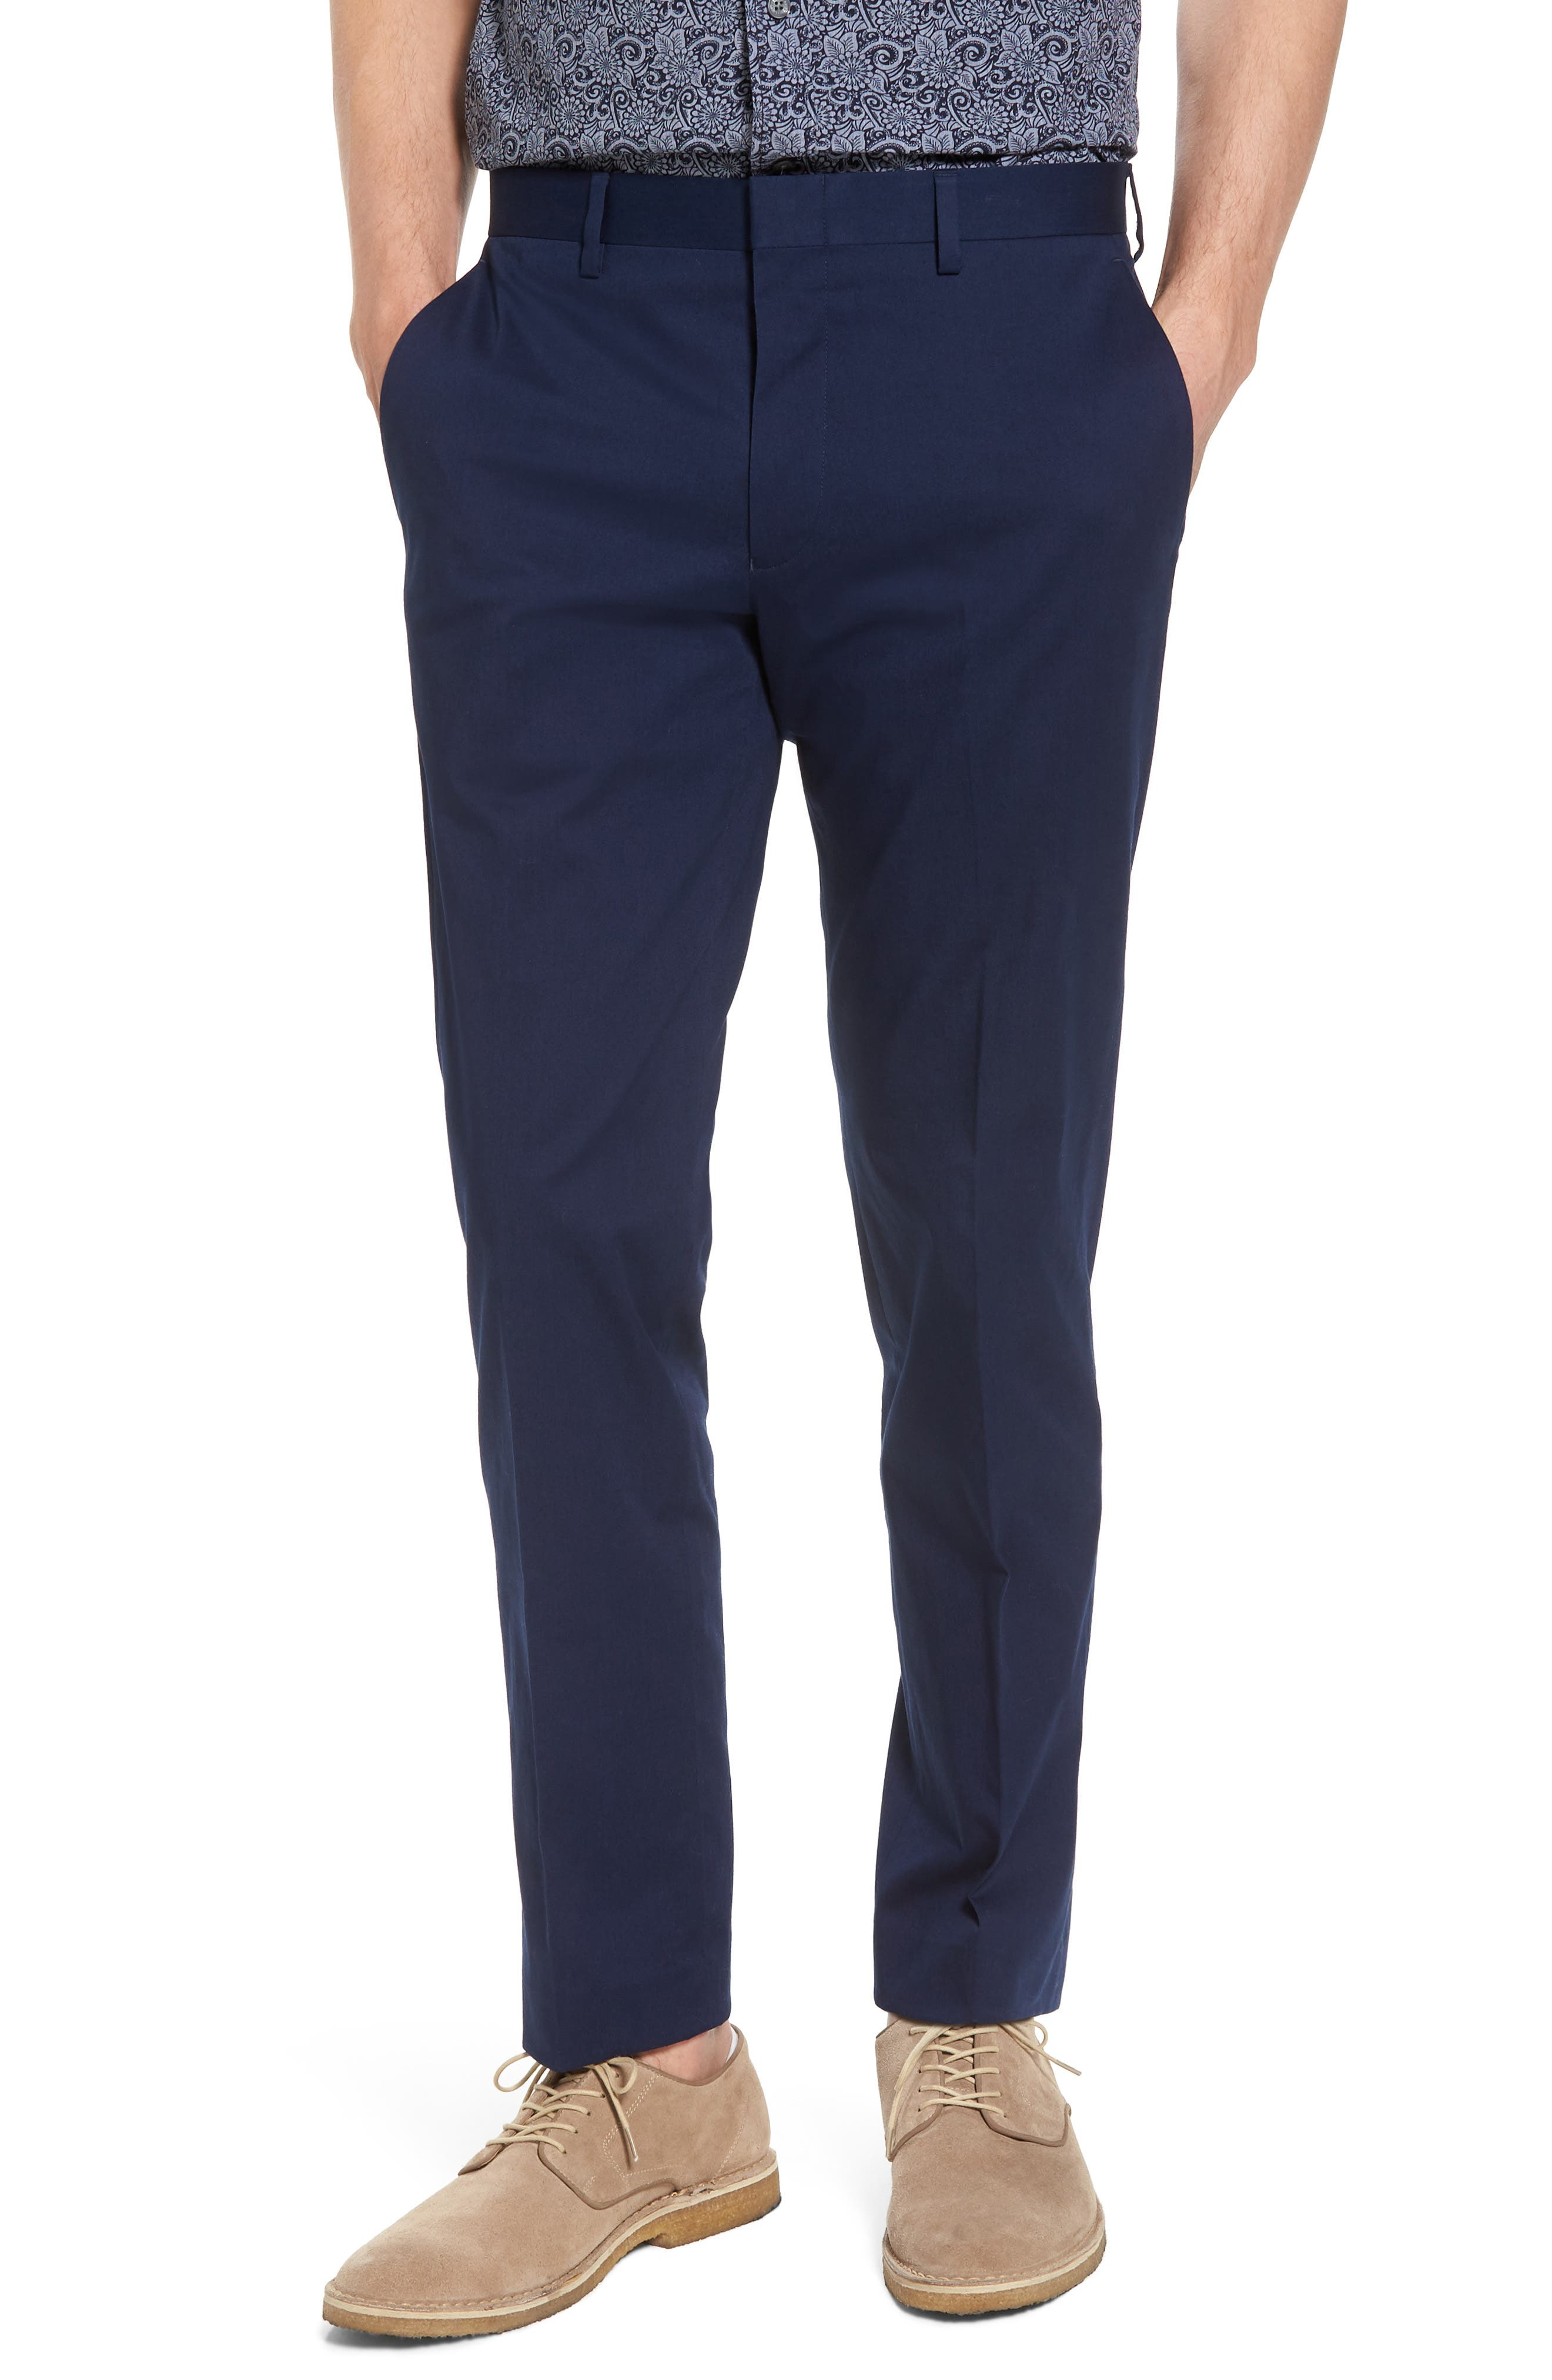 J.Crew Ludlow Stretch Chino Suit Pants